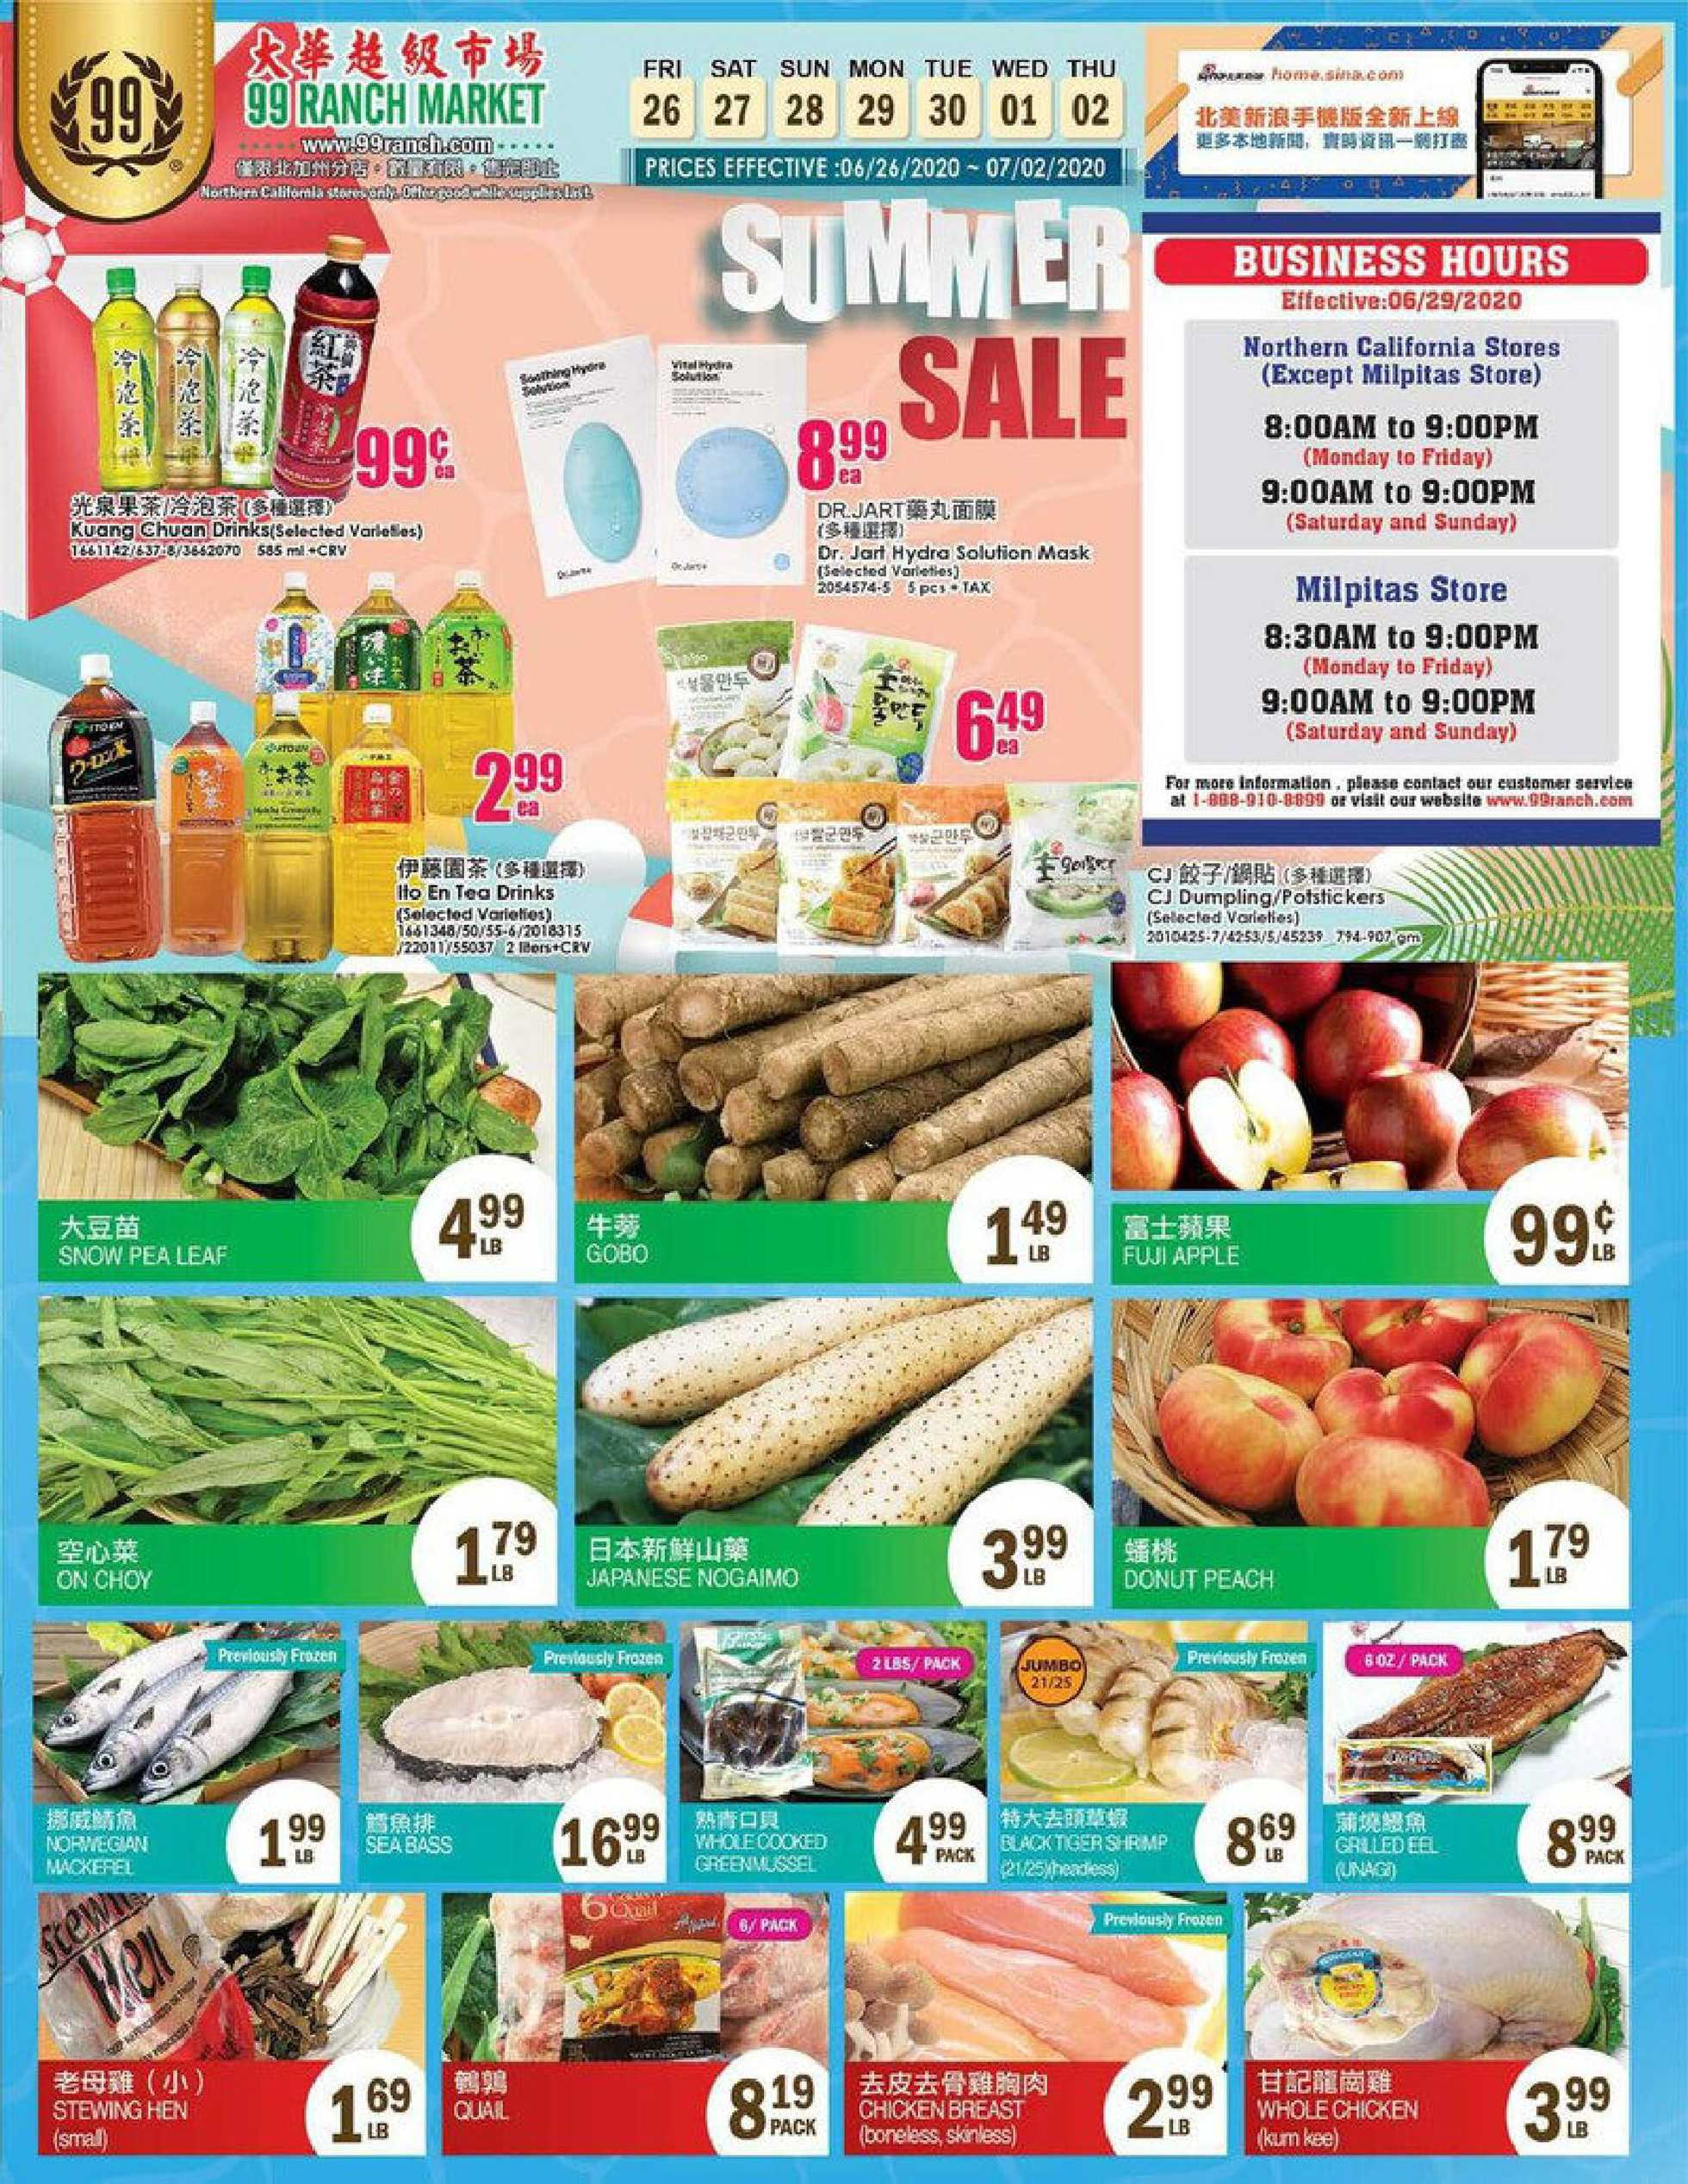 99 Ranch Market - deals are valid from 06/26/20 to 07/02/20 - page 1.